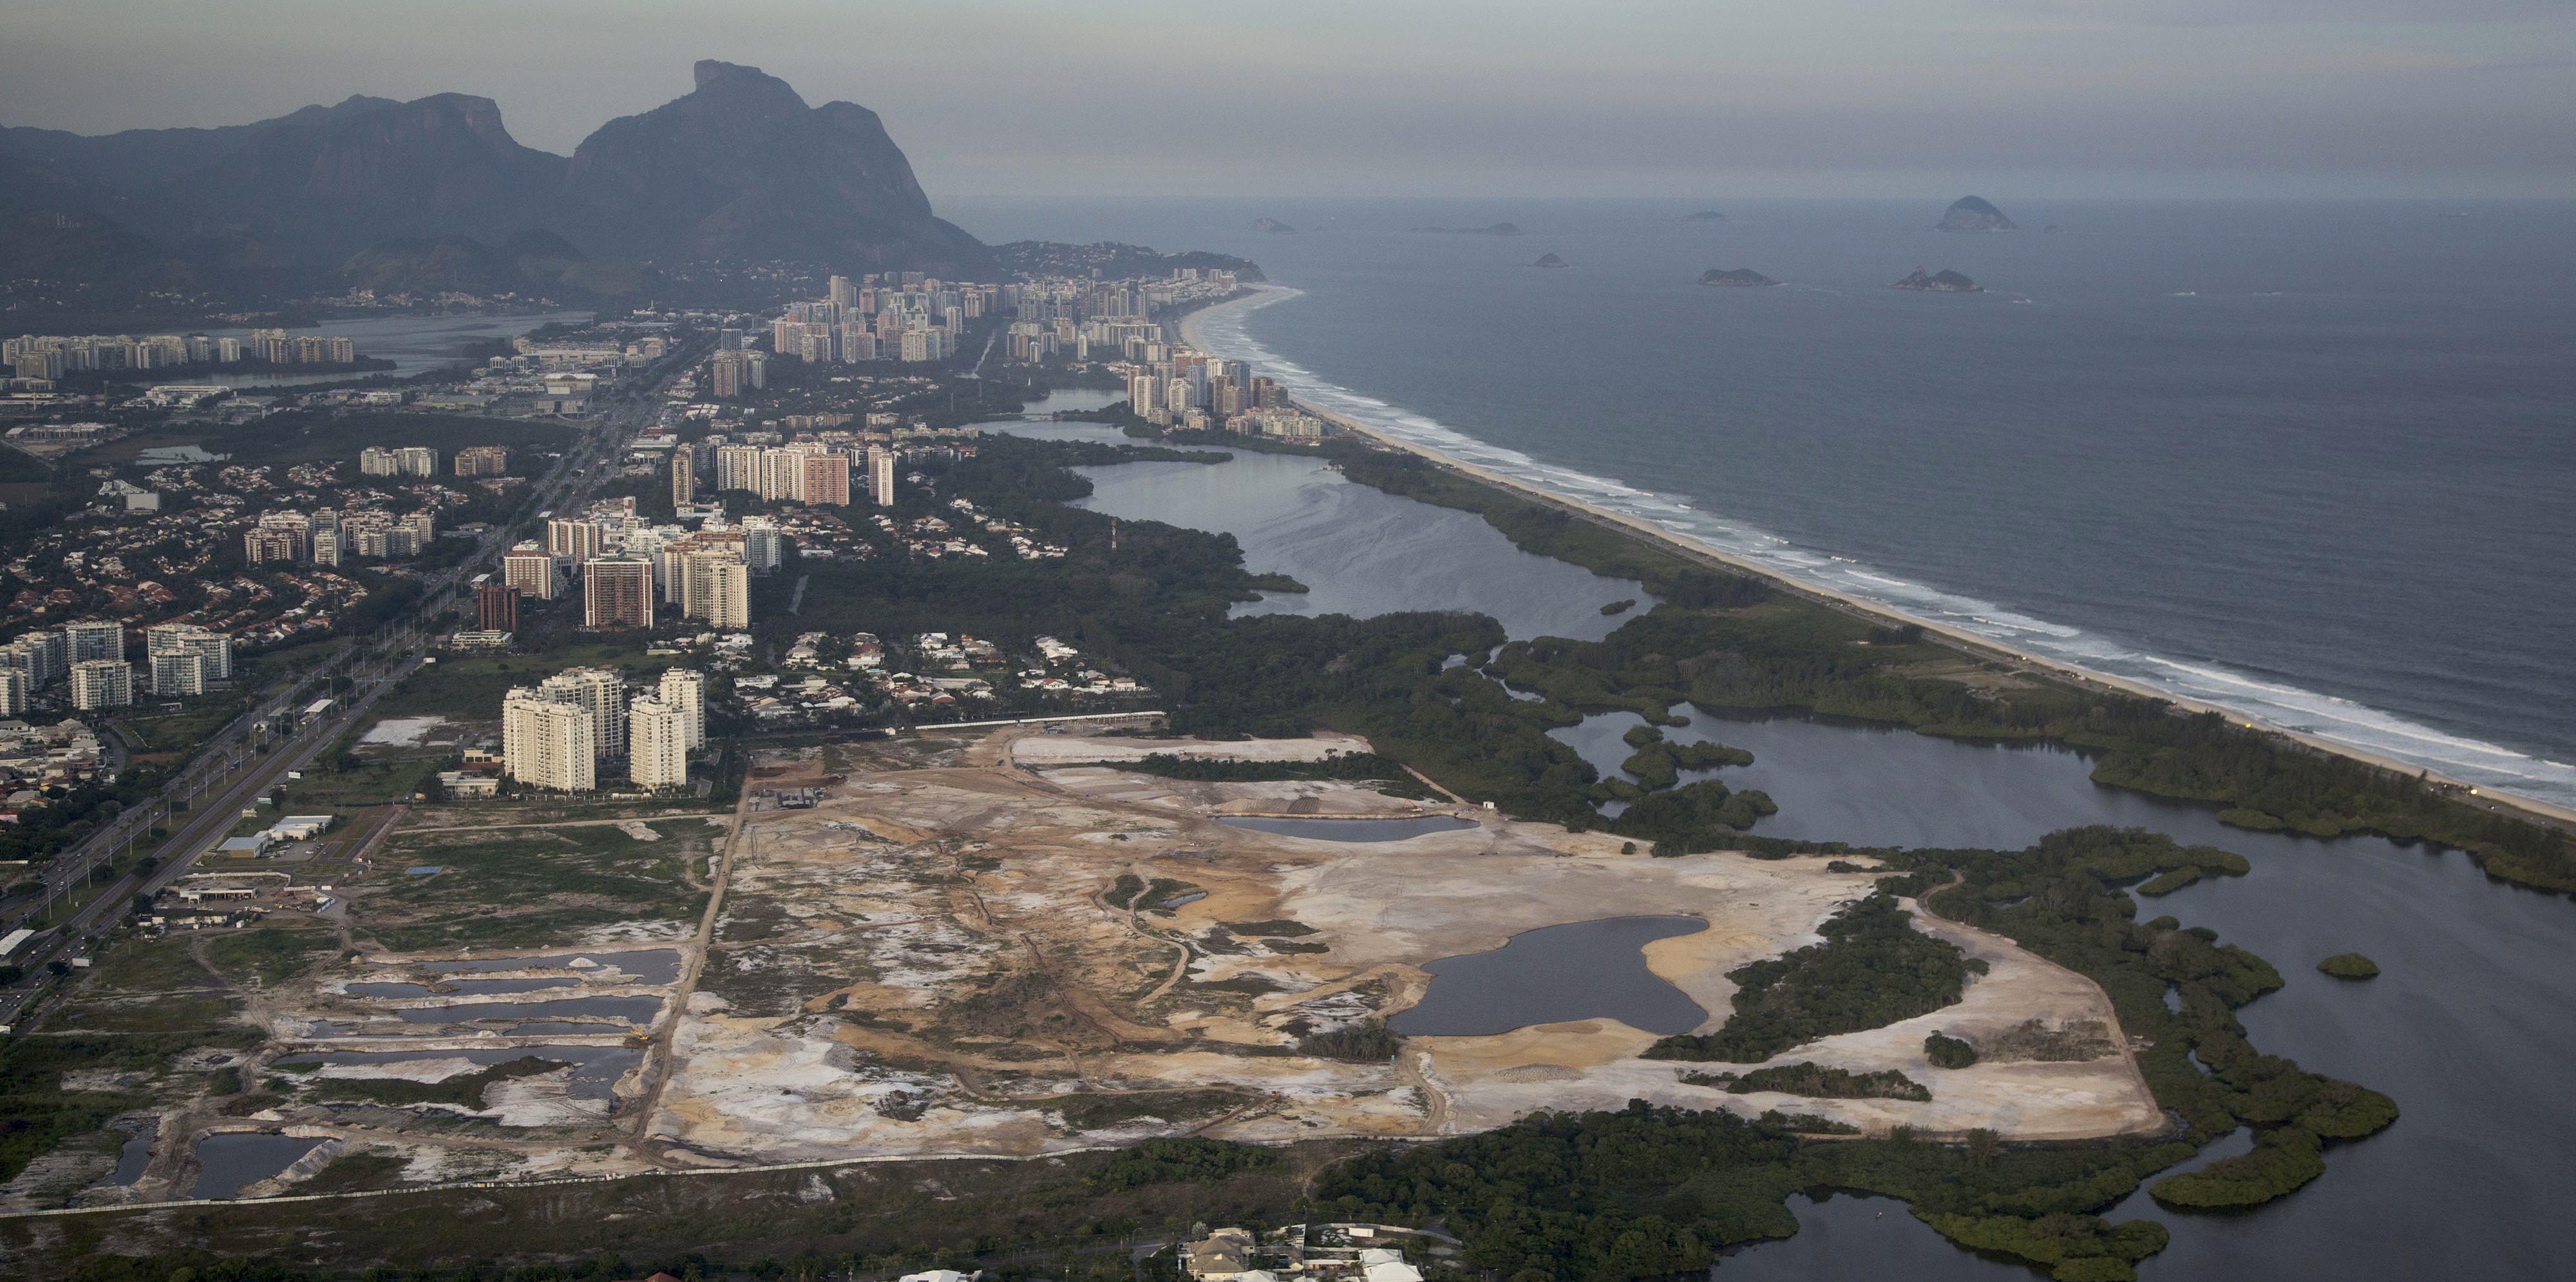 The IOC Is Ruining the Olympics, But Rio Could Save Them